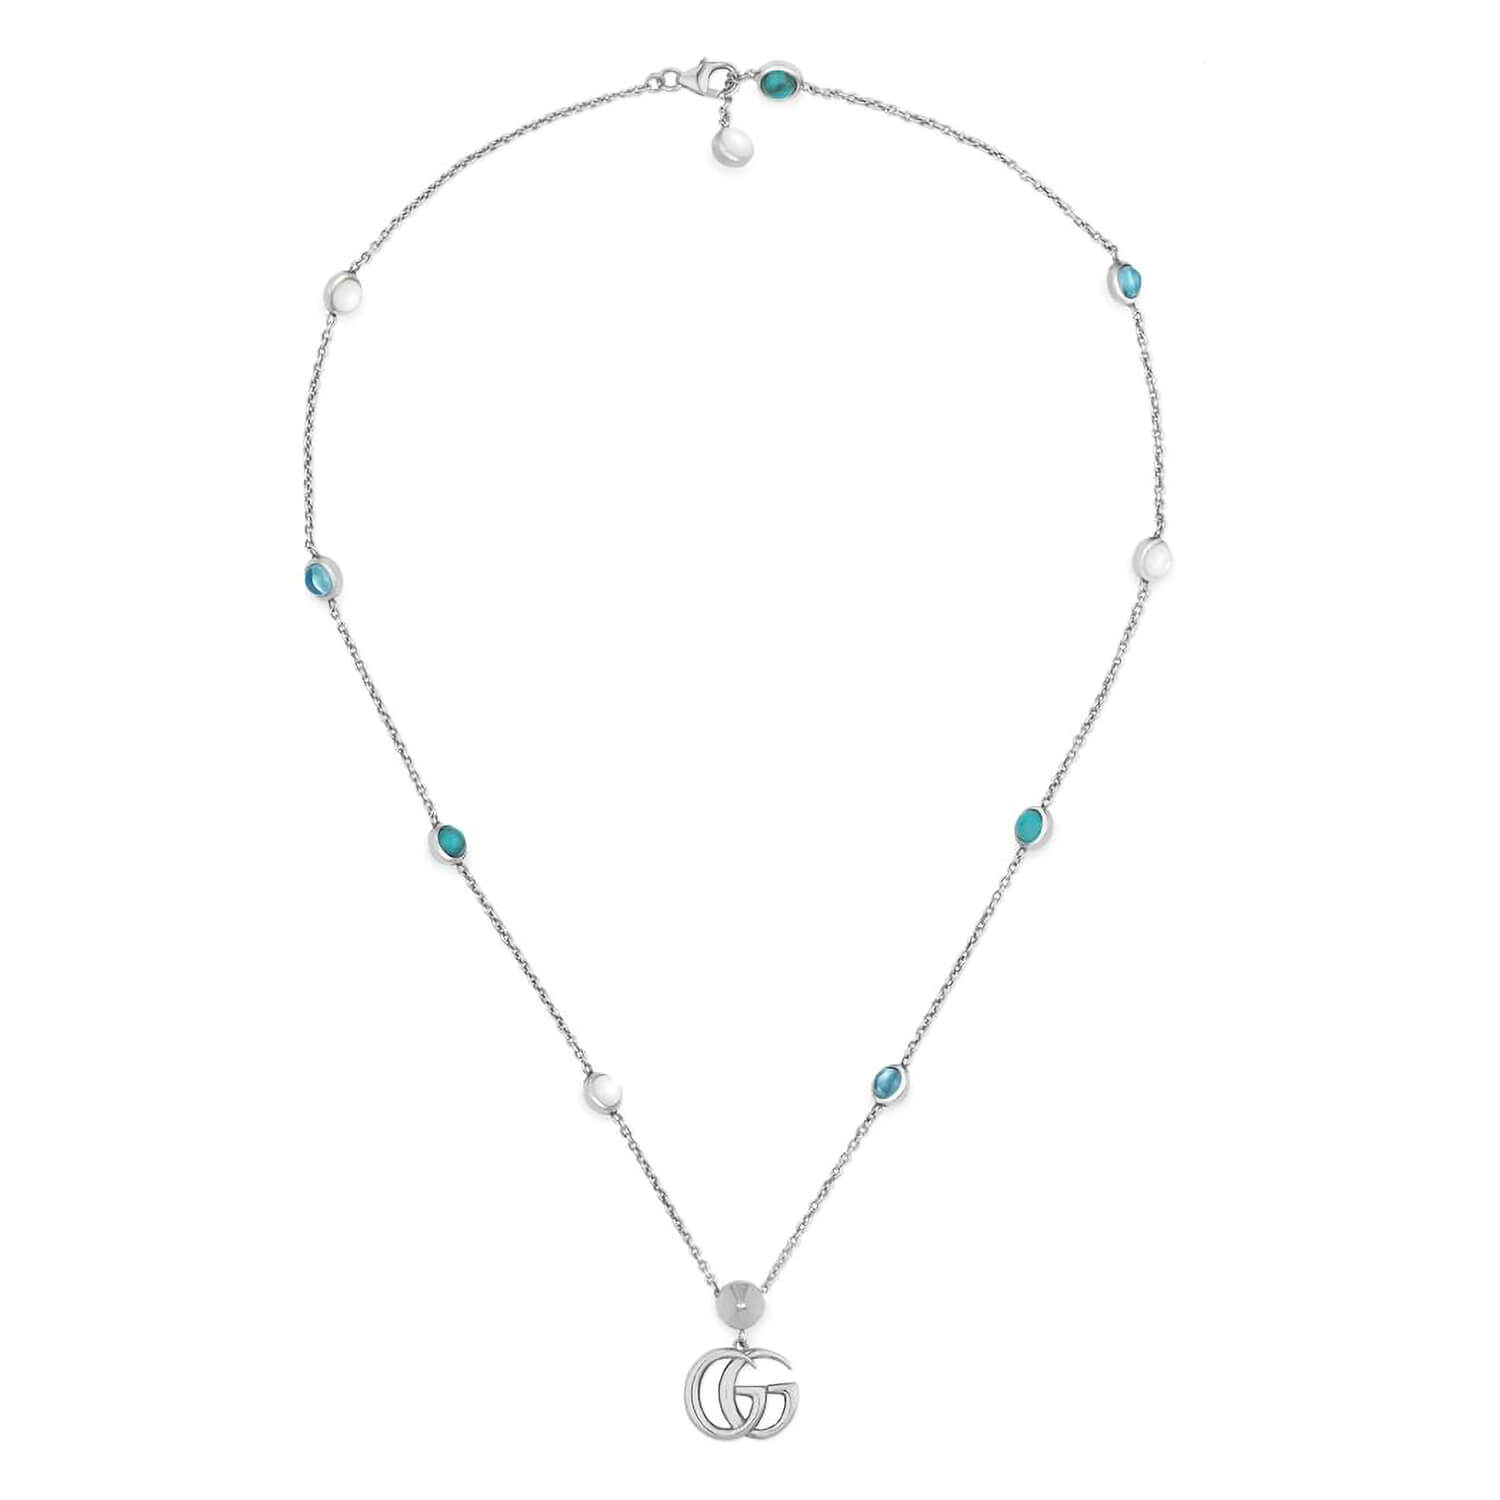 Gucci GG Marmont Sterling Silver Gemstone Station Pendant